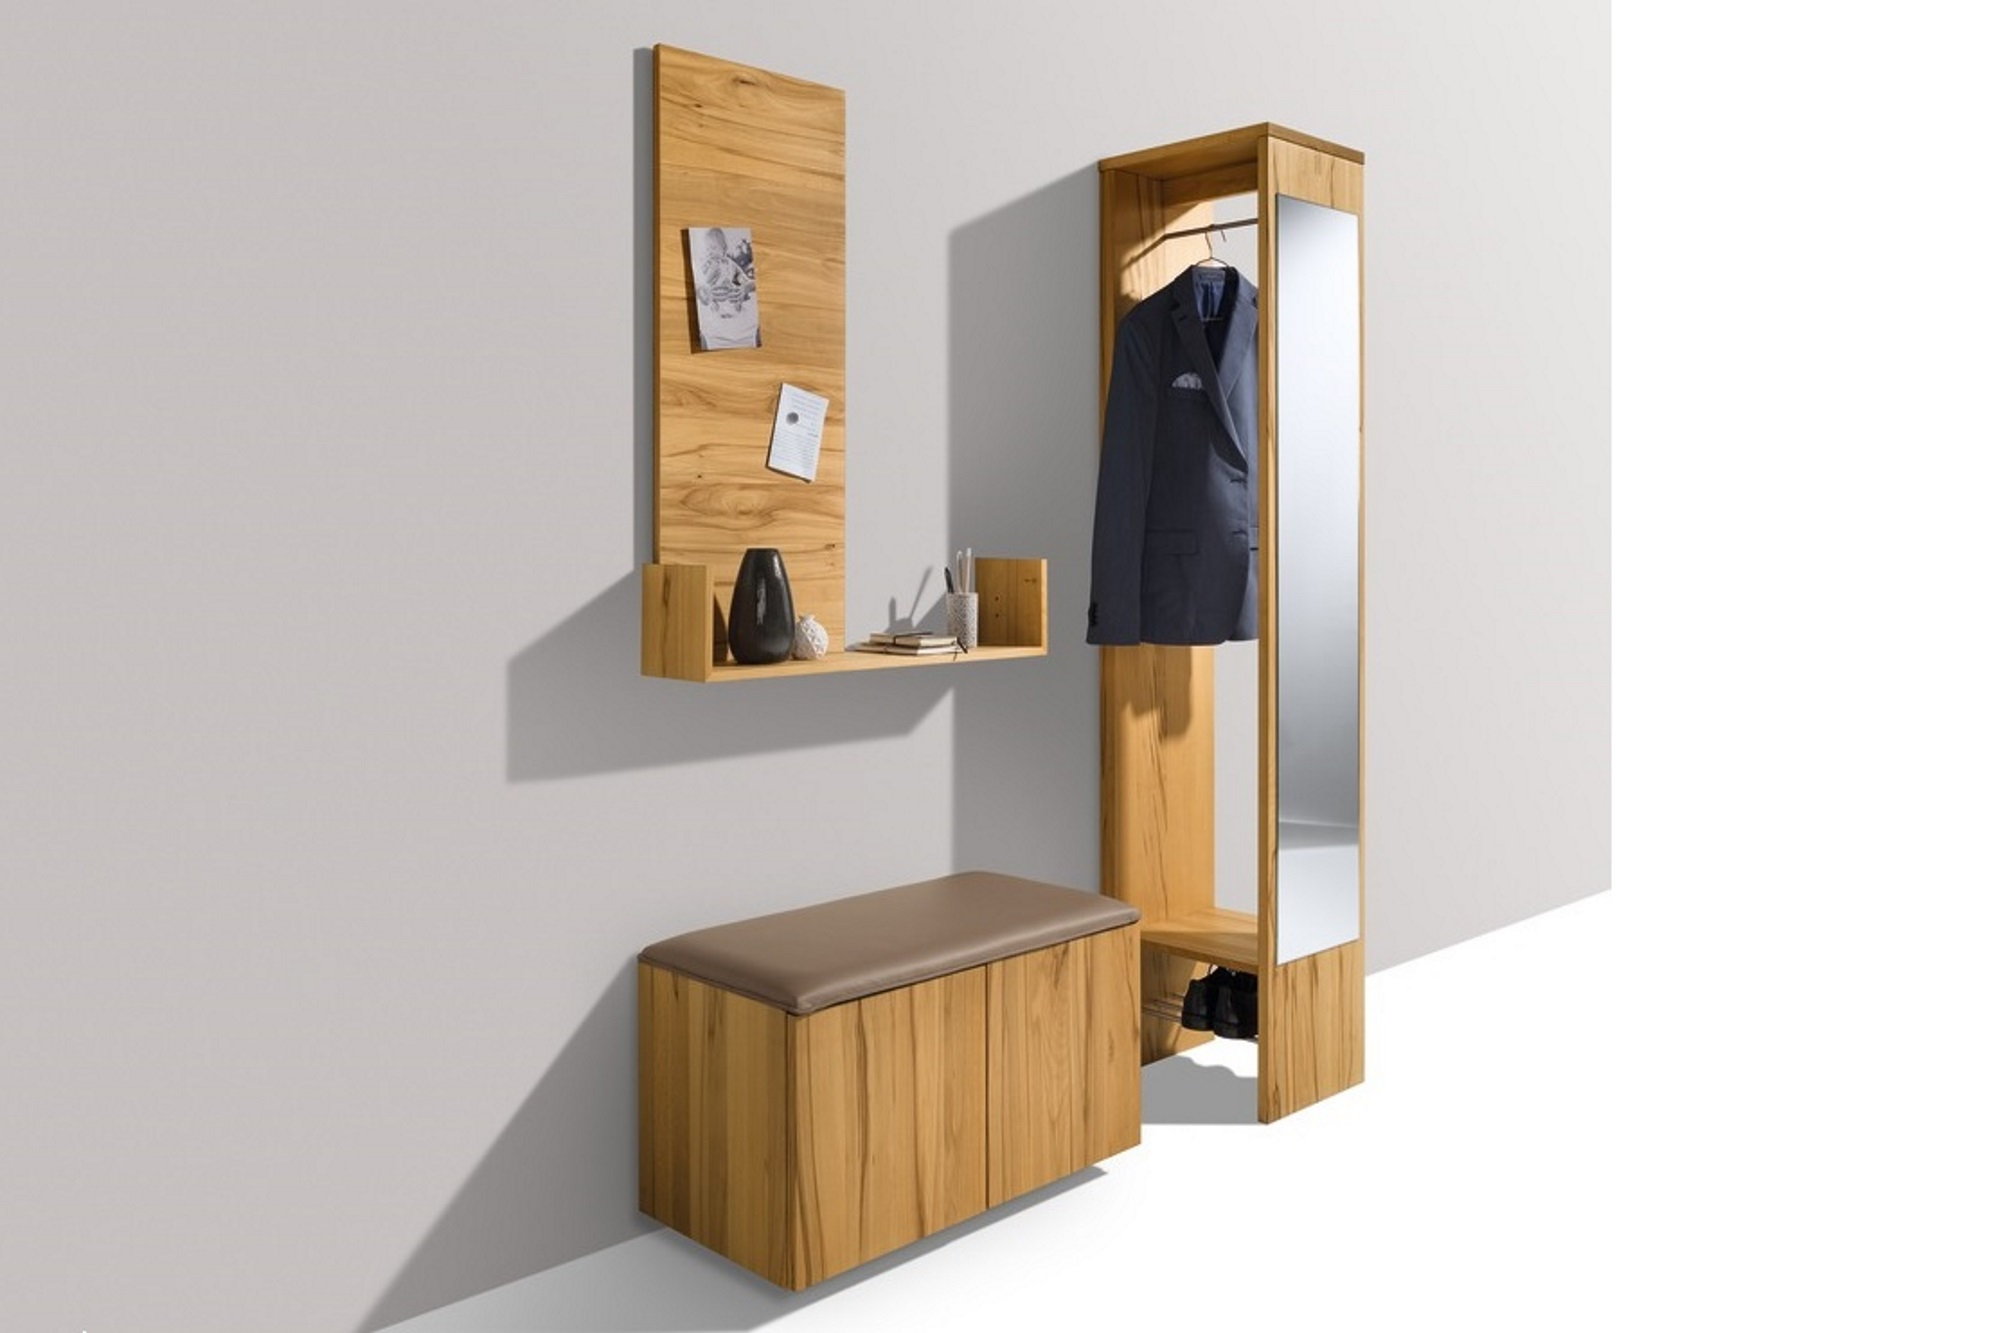 garderobe mit ablage garderobe mit ablage dielen. Black Bedroom Furniture Sets. Home Design Ideas